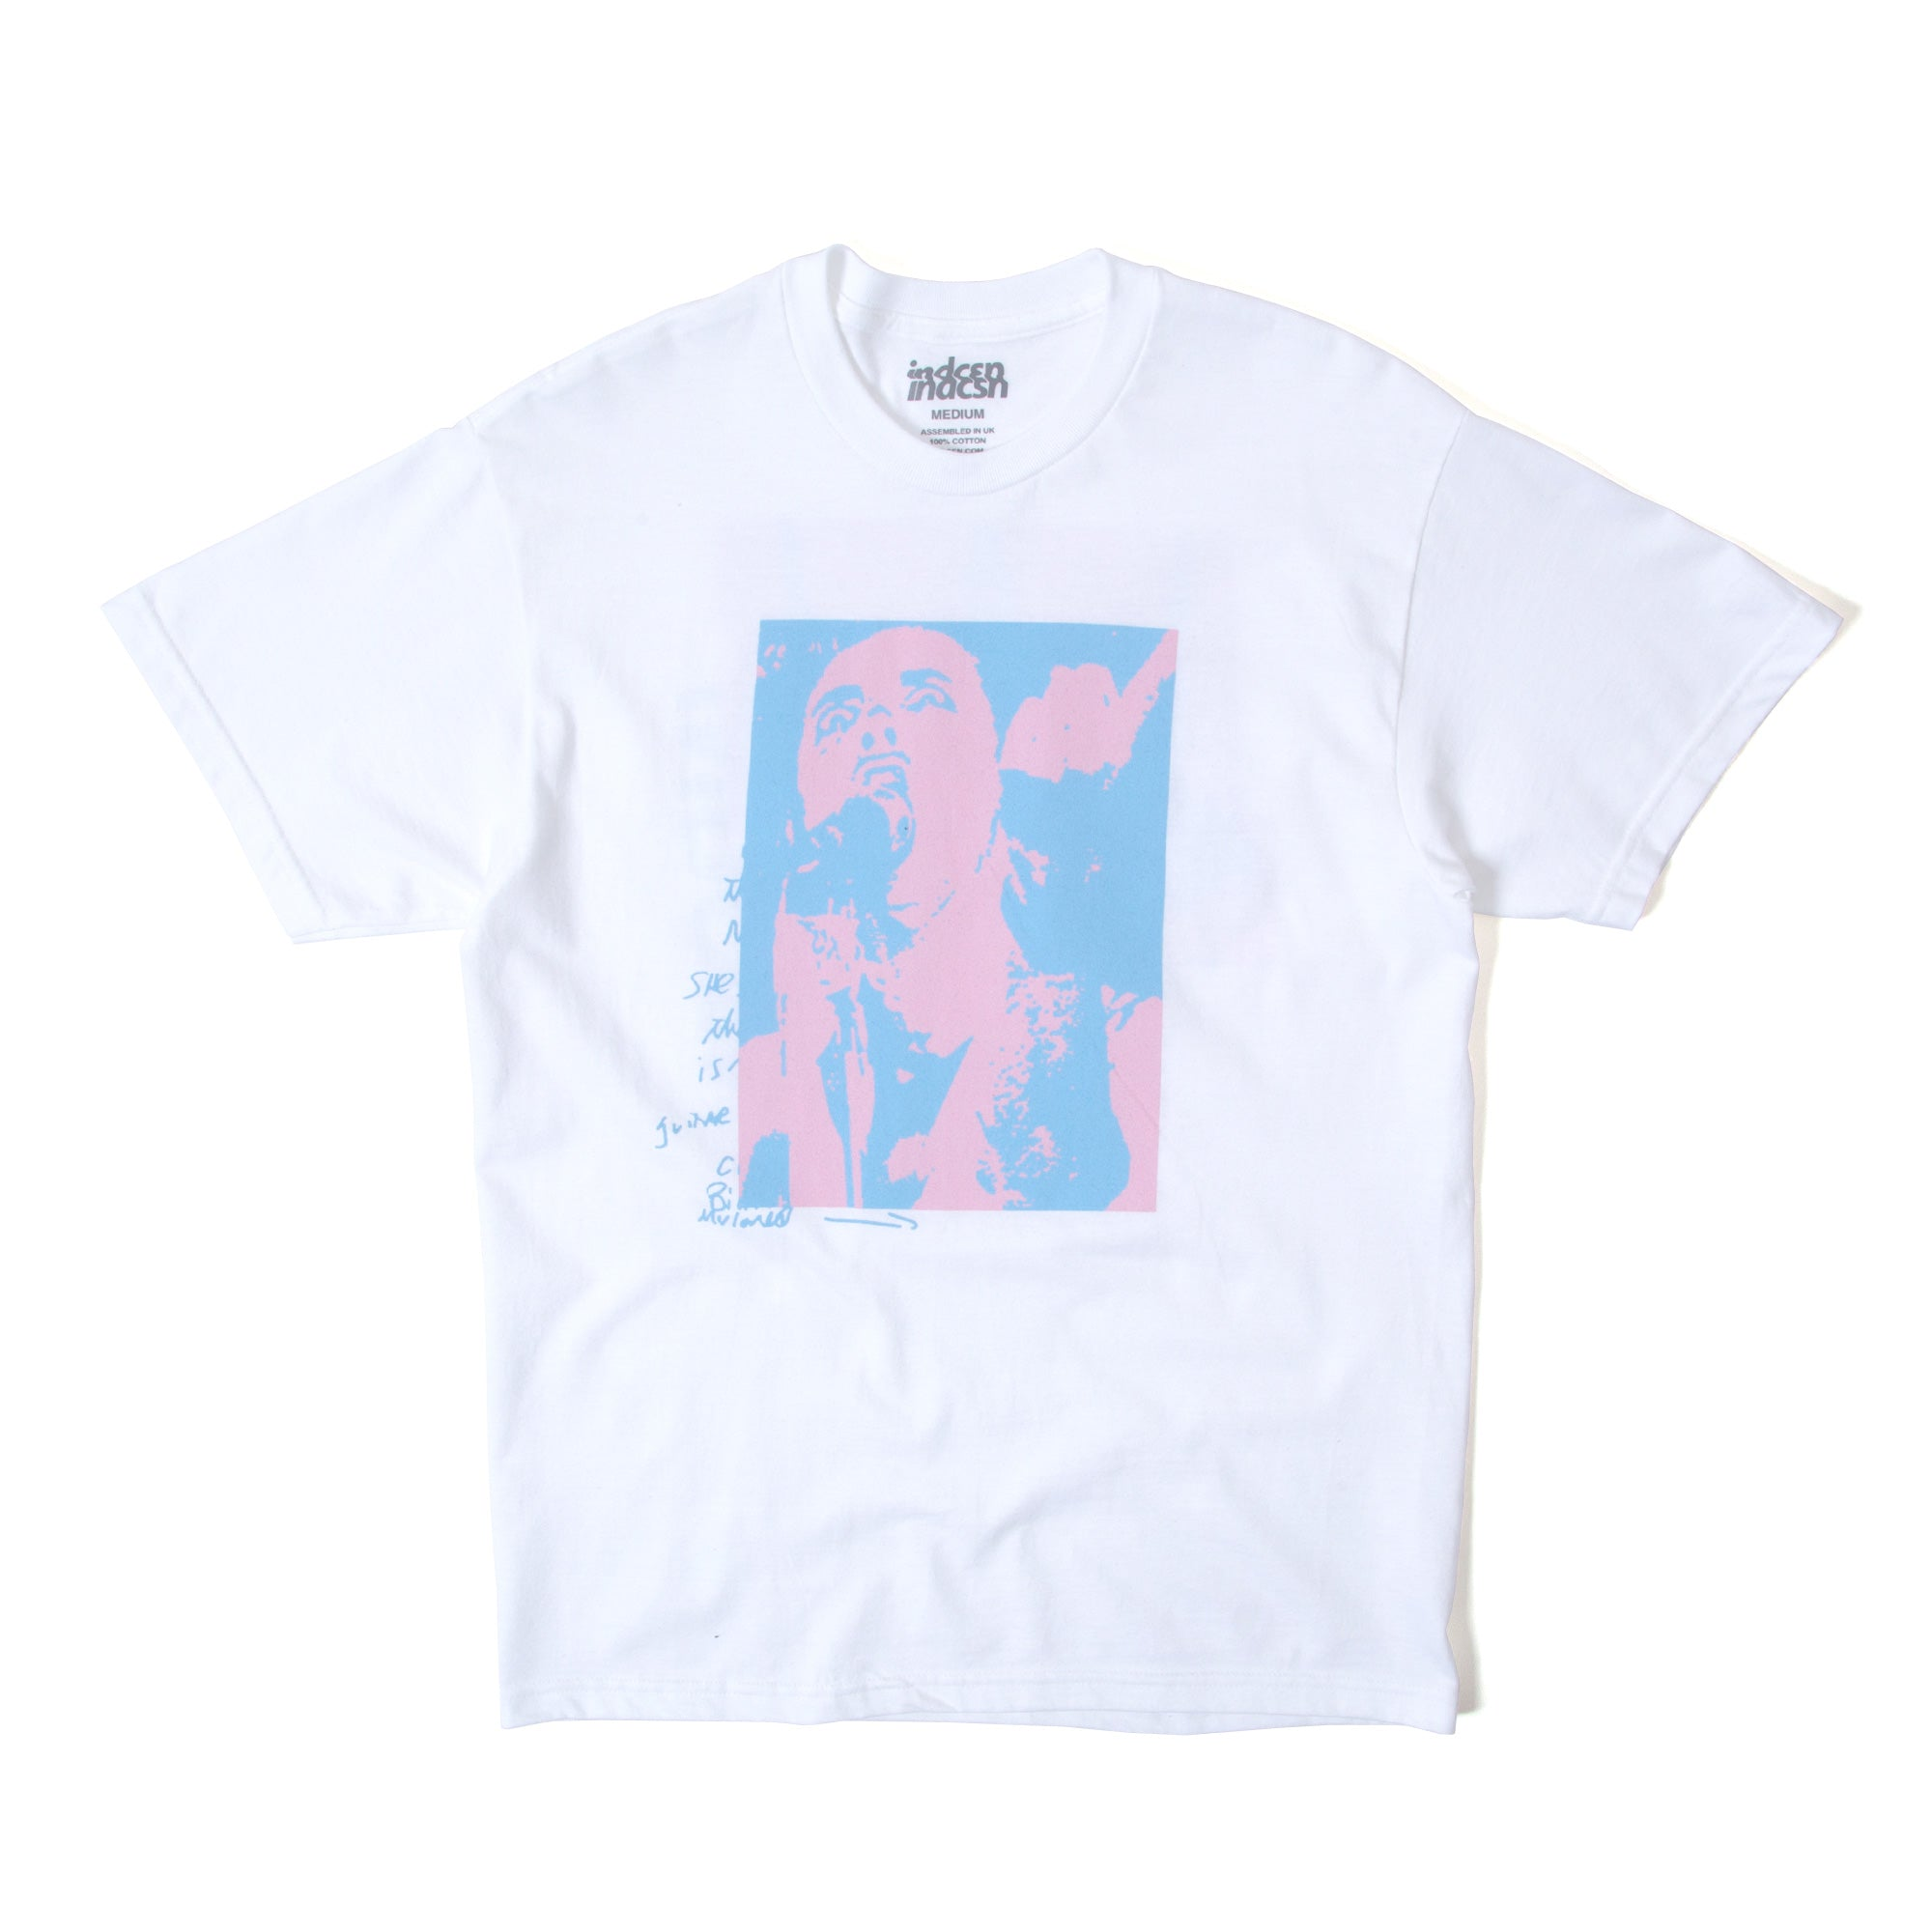 Crash T Shirt - White